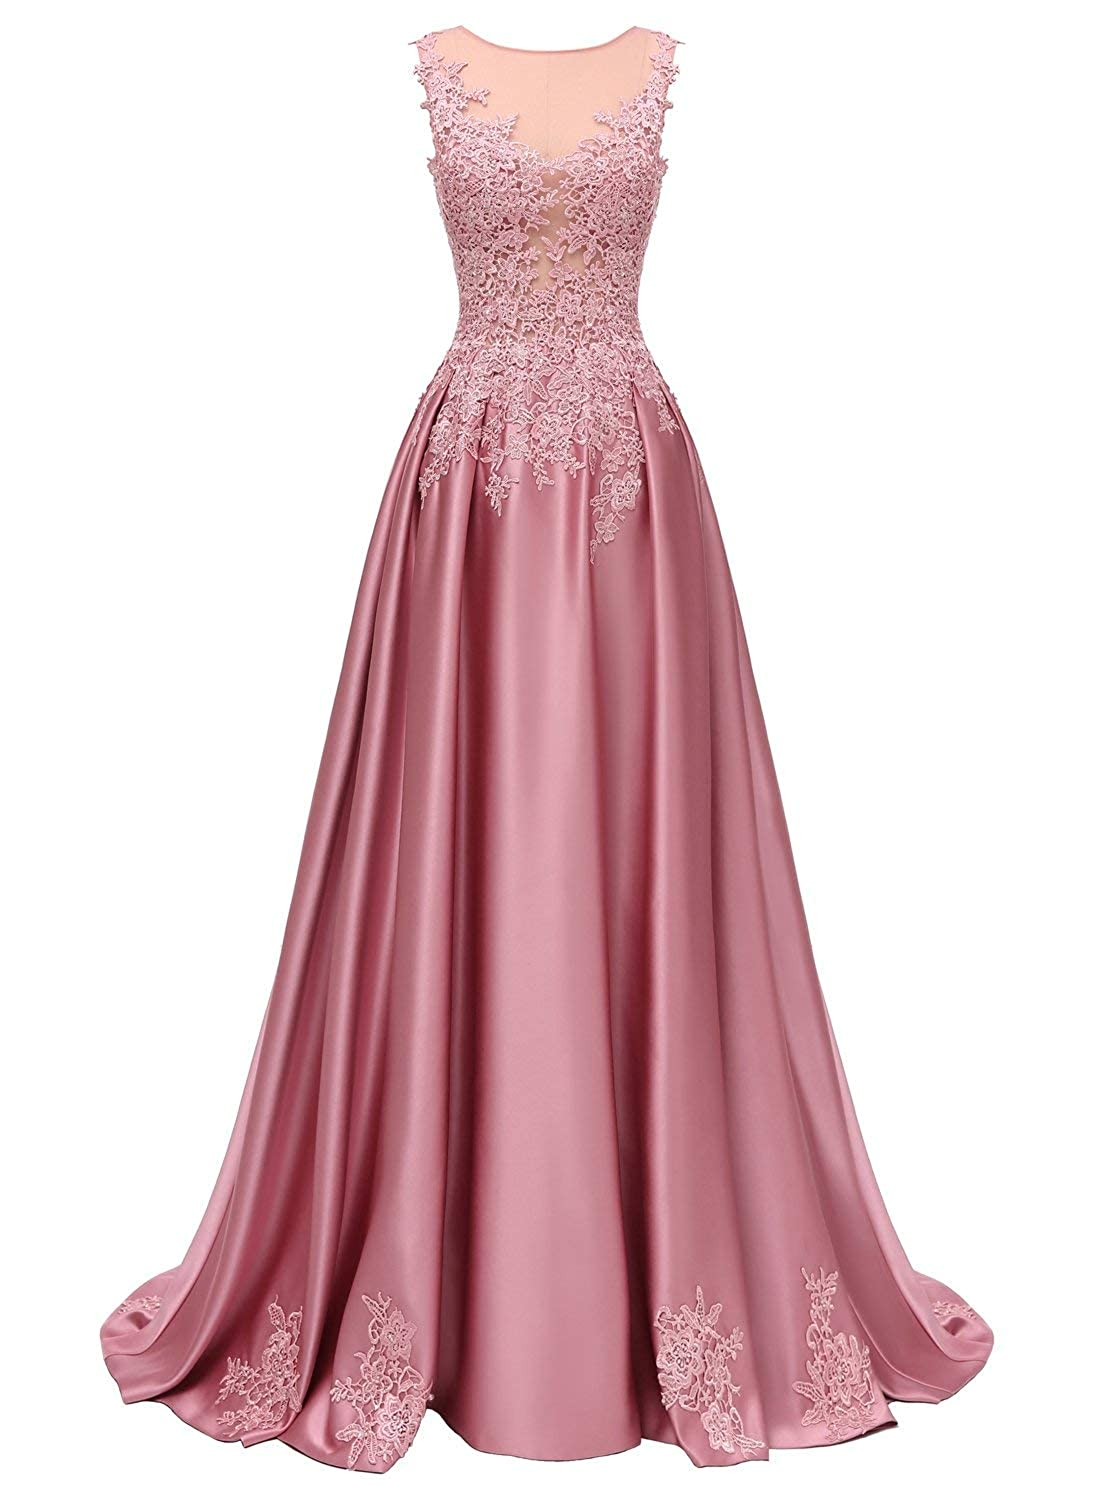 Pink Dressytailor Aline Scoop Long Satin Appliques Beading Prom Dress Formal Evening Gown with Pockets